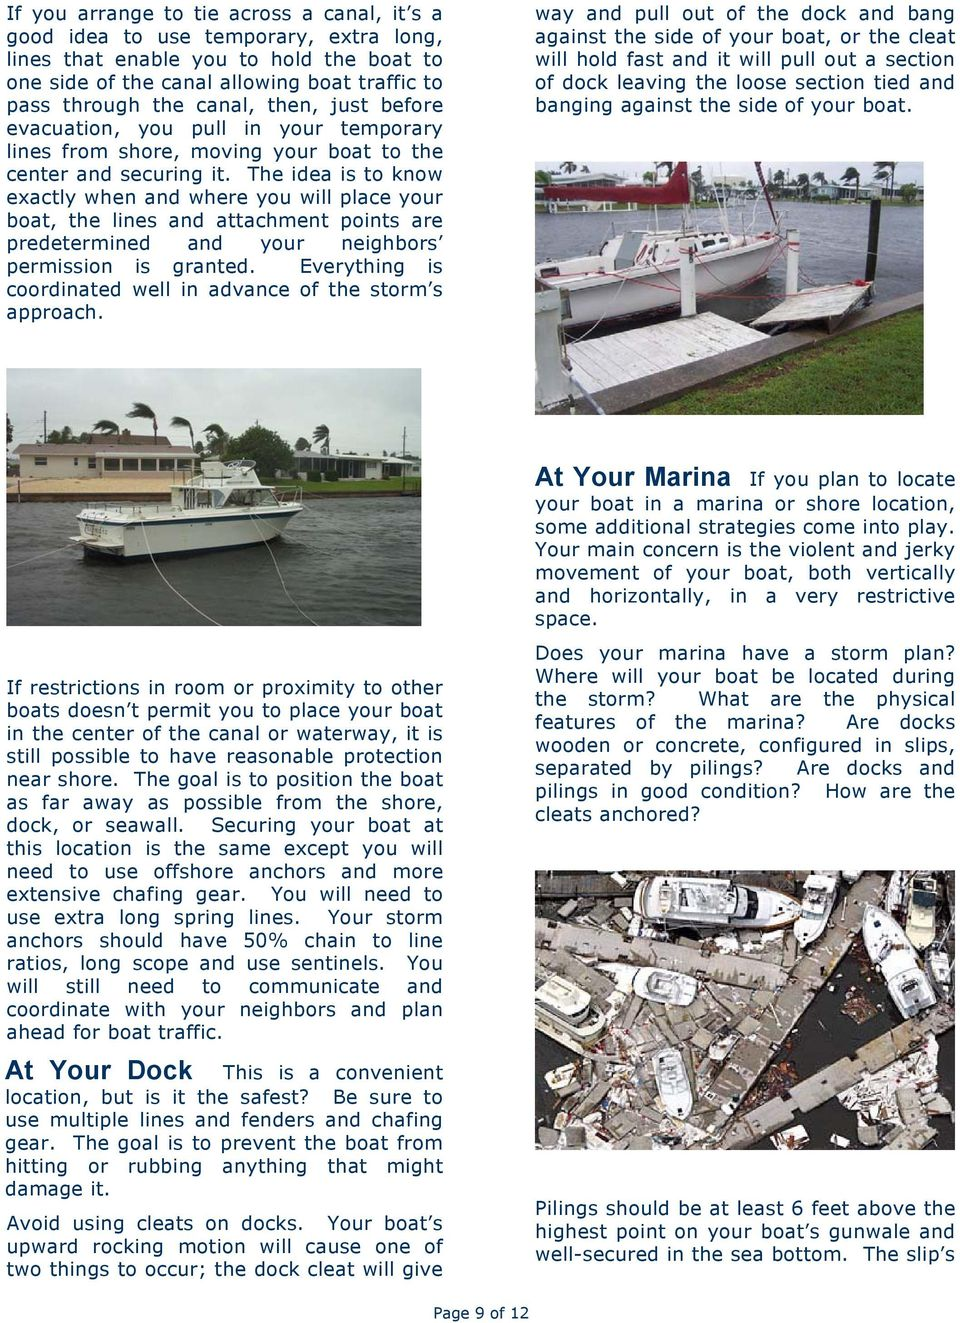 The idea is to know exactly when and where you will place your boat, the lines and attachment points are predetermined and your neighbors permission is granted.